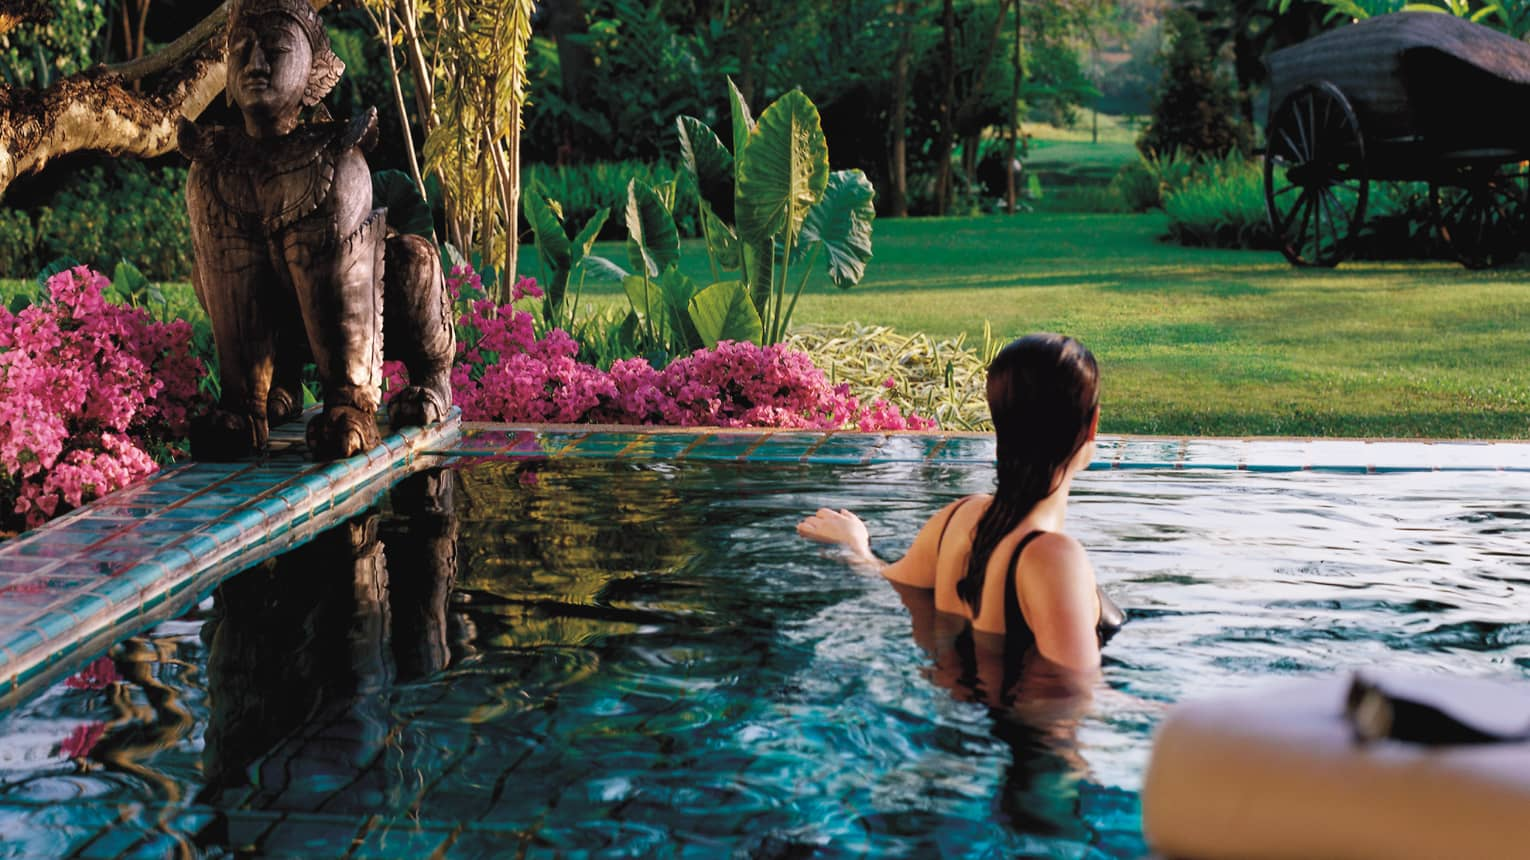 Back of woman in swimsuit wading in private plunge pool lines with pink flowers, large bronze statue